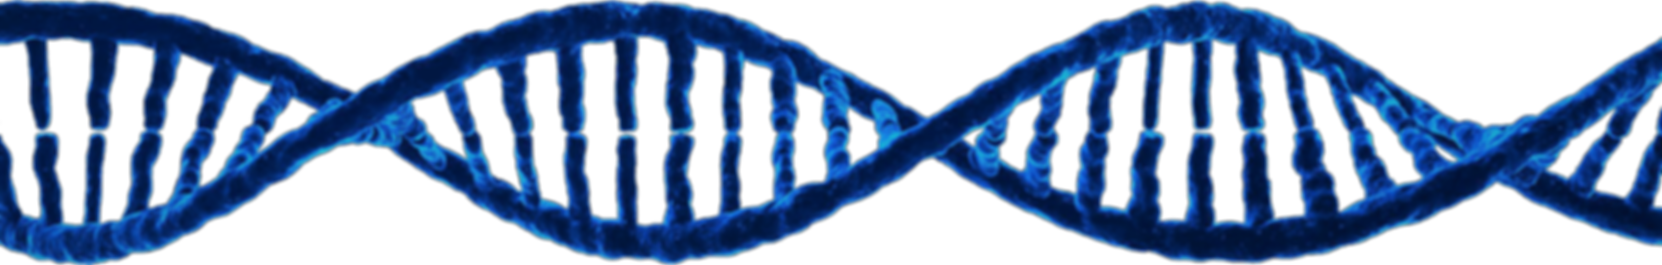 double helix DNA strand GeneInformed genetic testing analysis